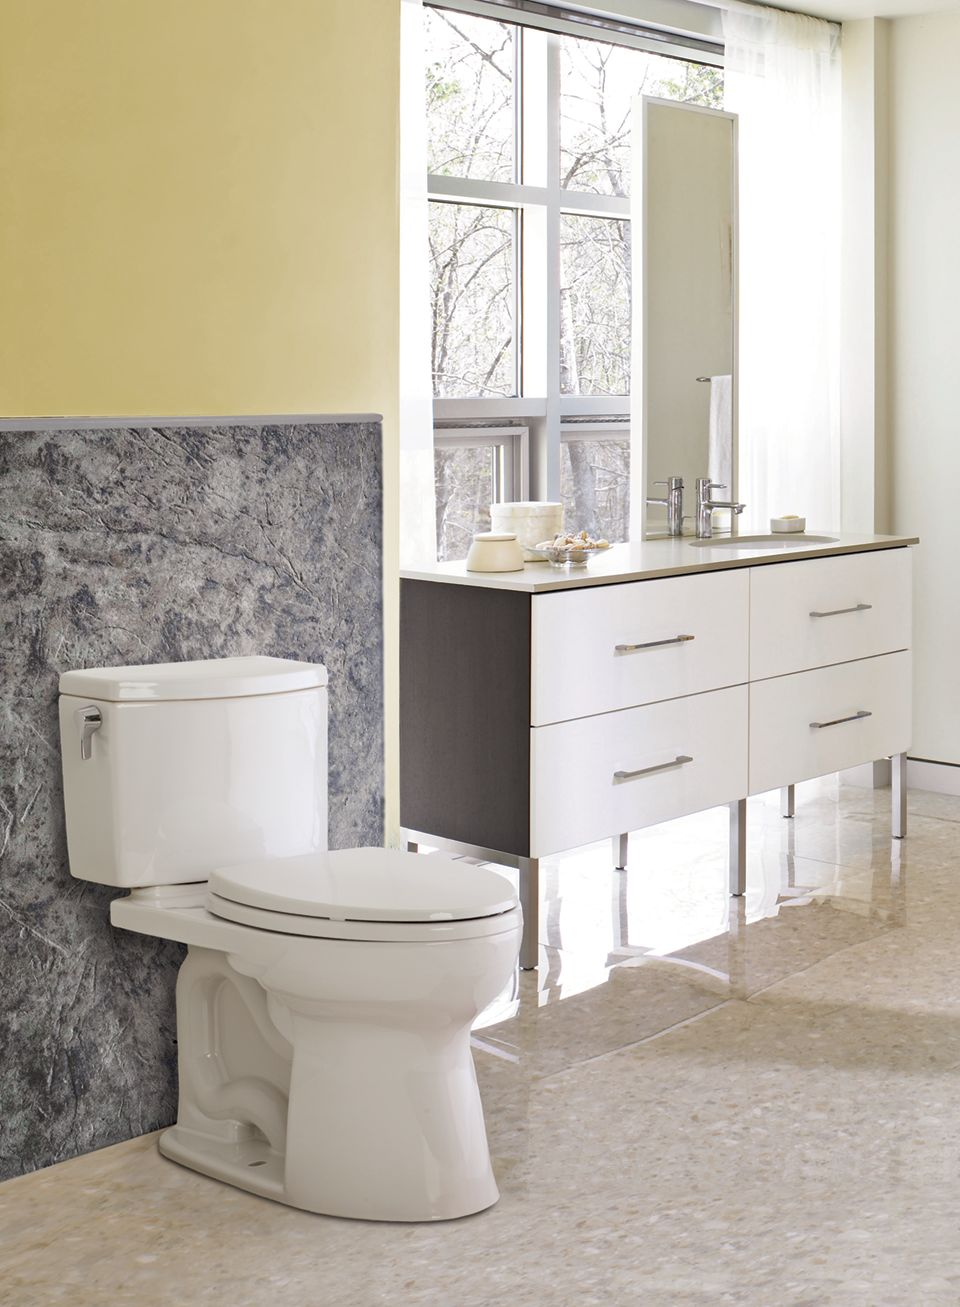 Drake® II Two-Piece Toilet, 1.28 GPF, Elongated Bowl - TotoUSA.com